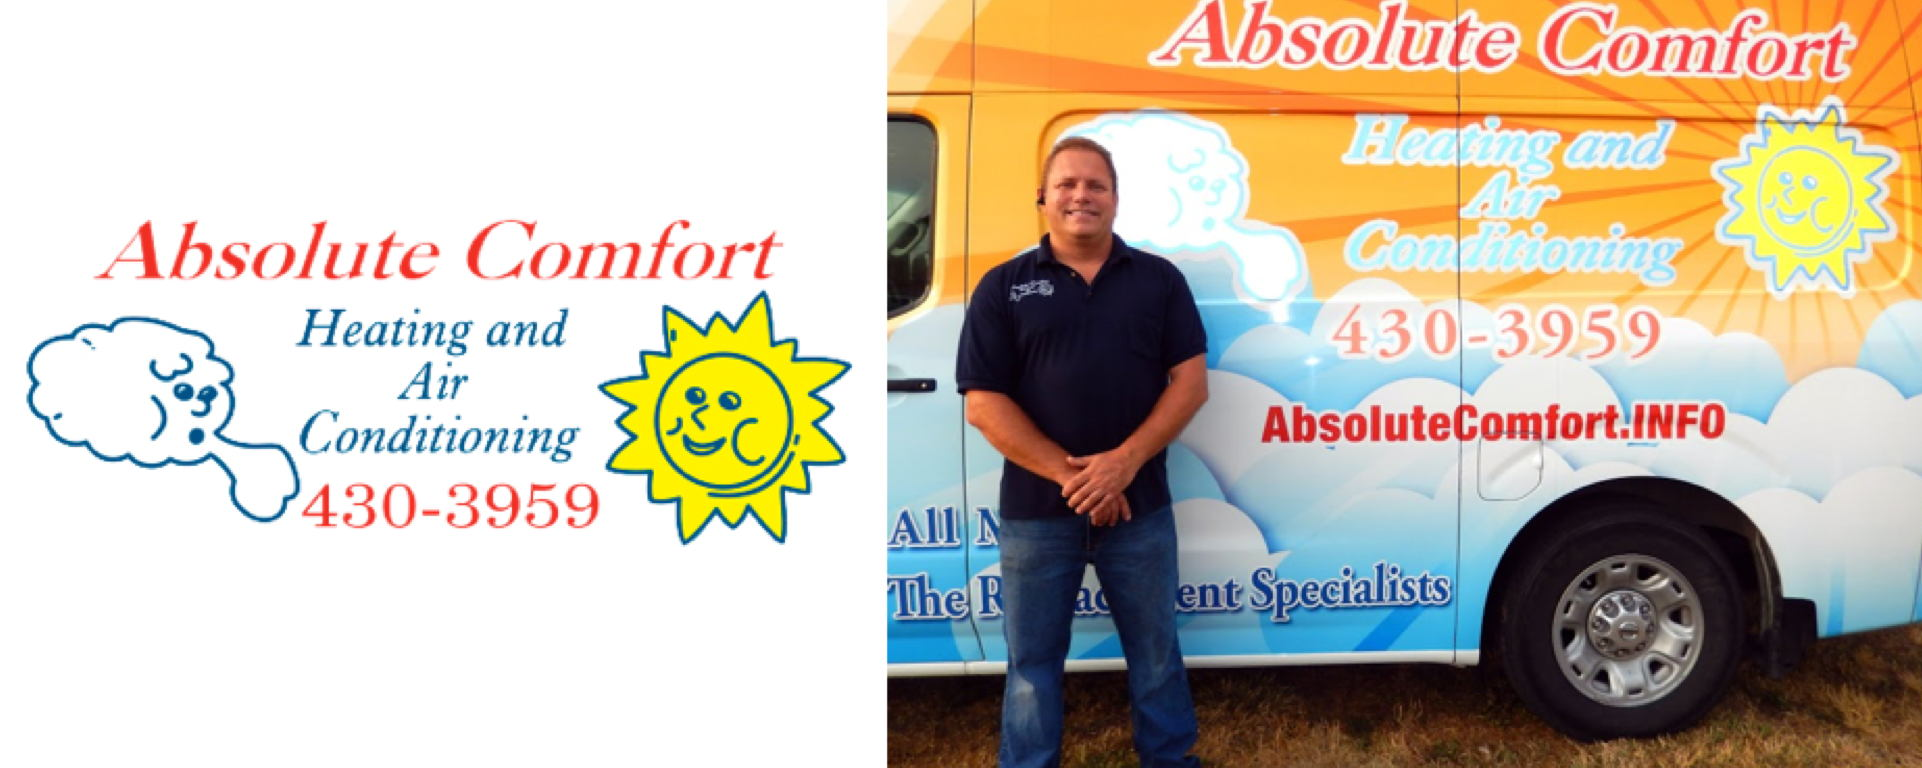 Absolute Comfort Heating and Air Conditioning